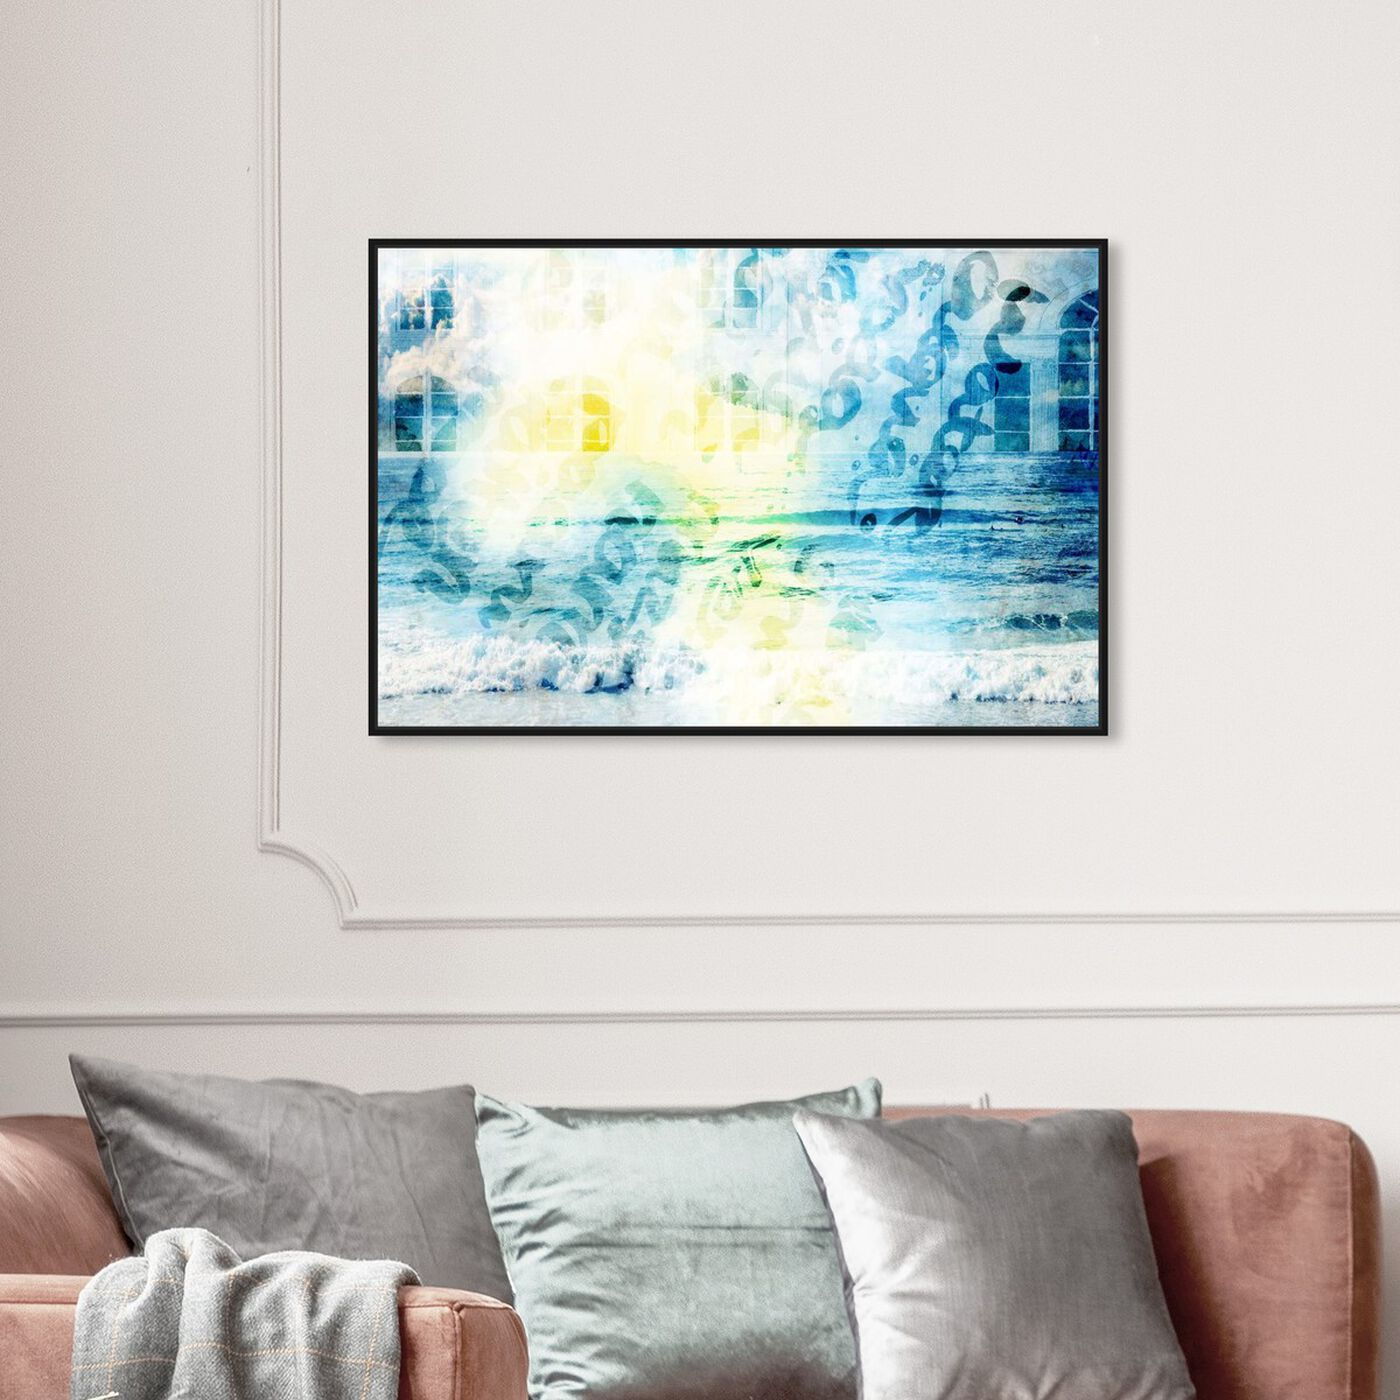 Hanging view of Water Is featuring abstract and watercolor art.